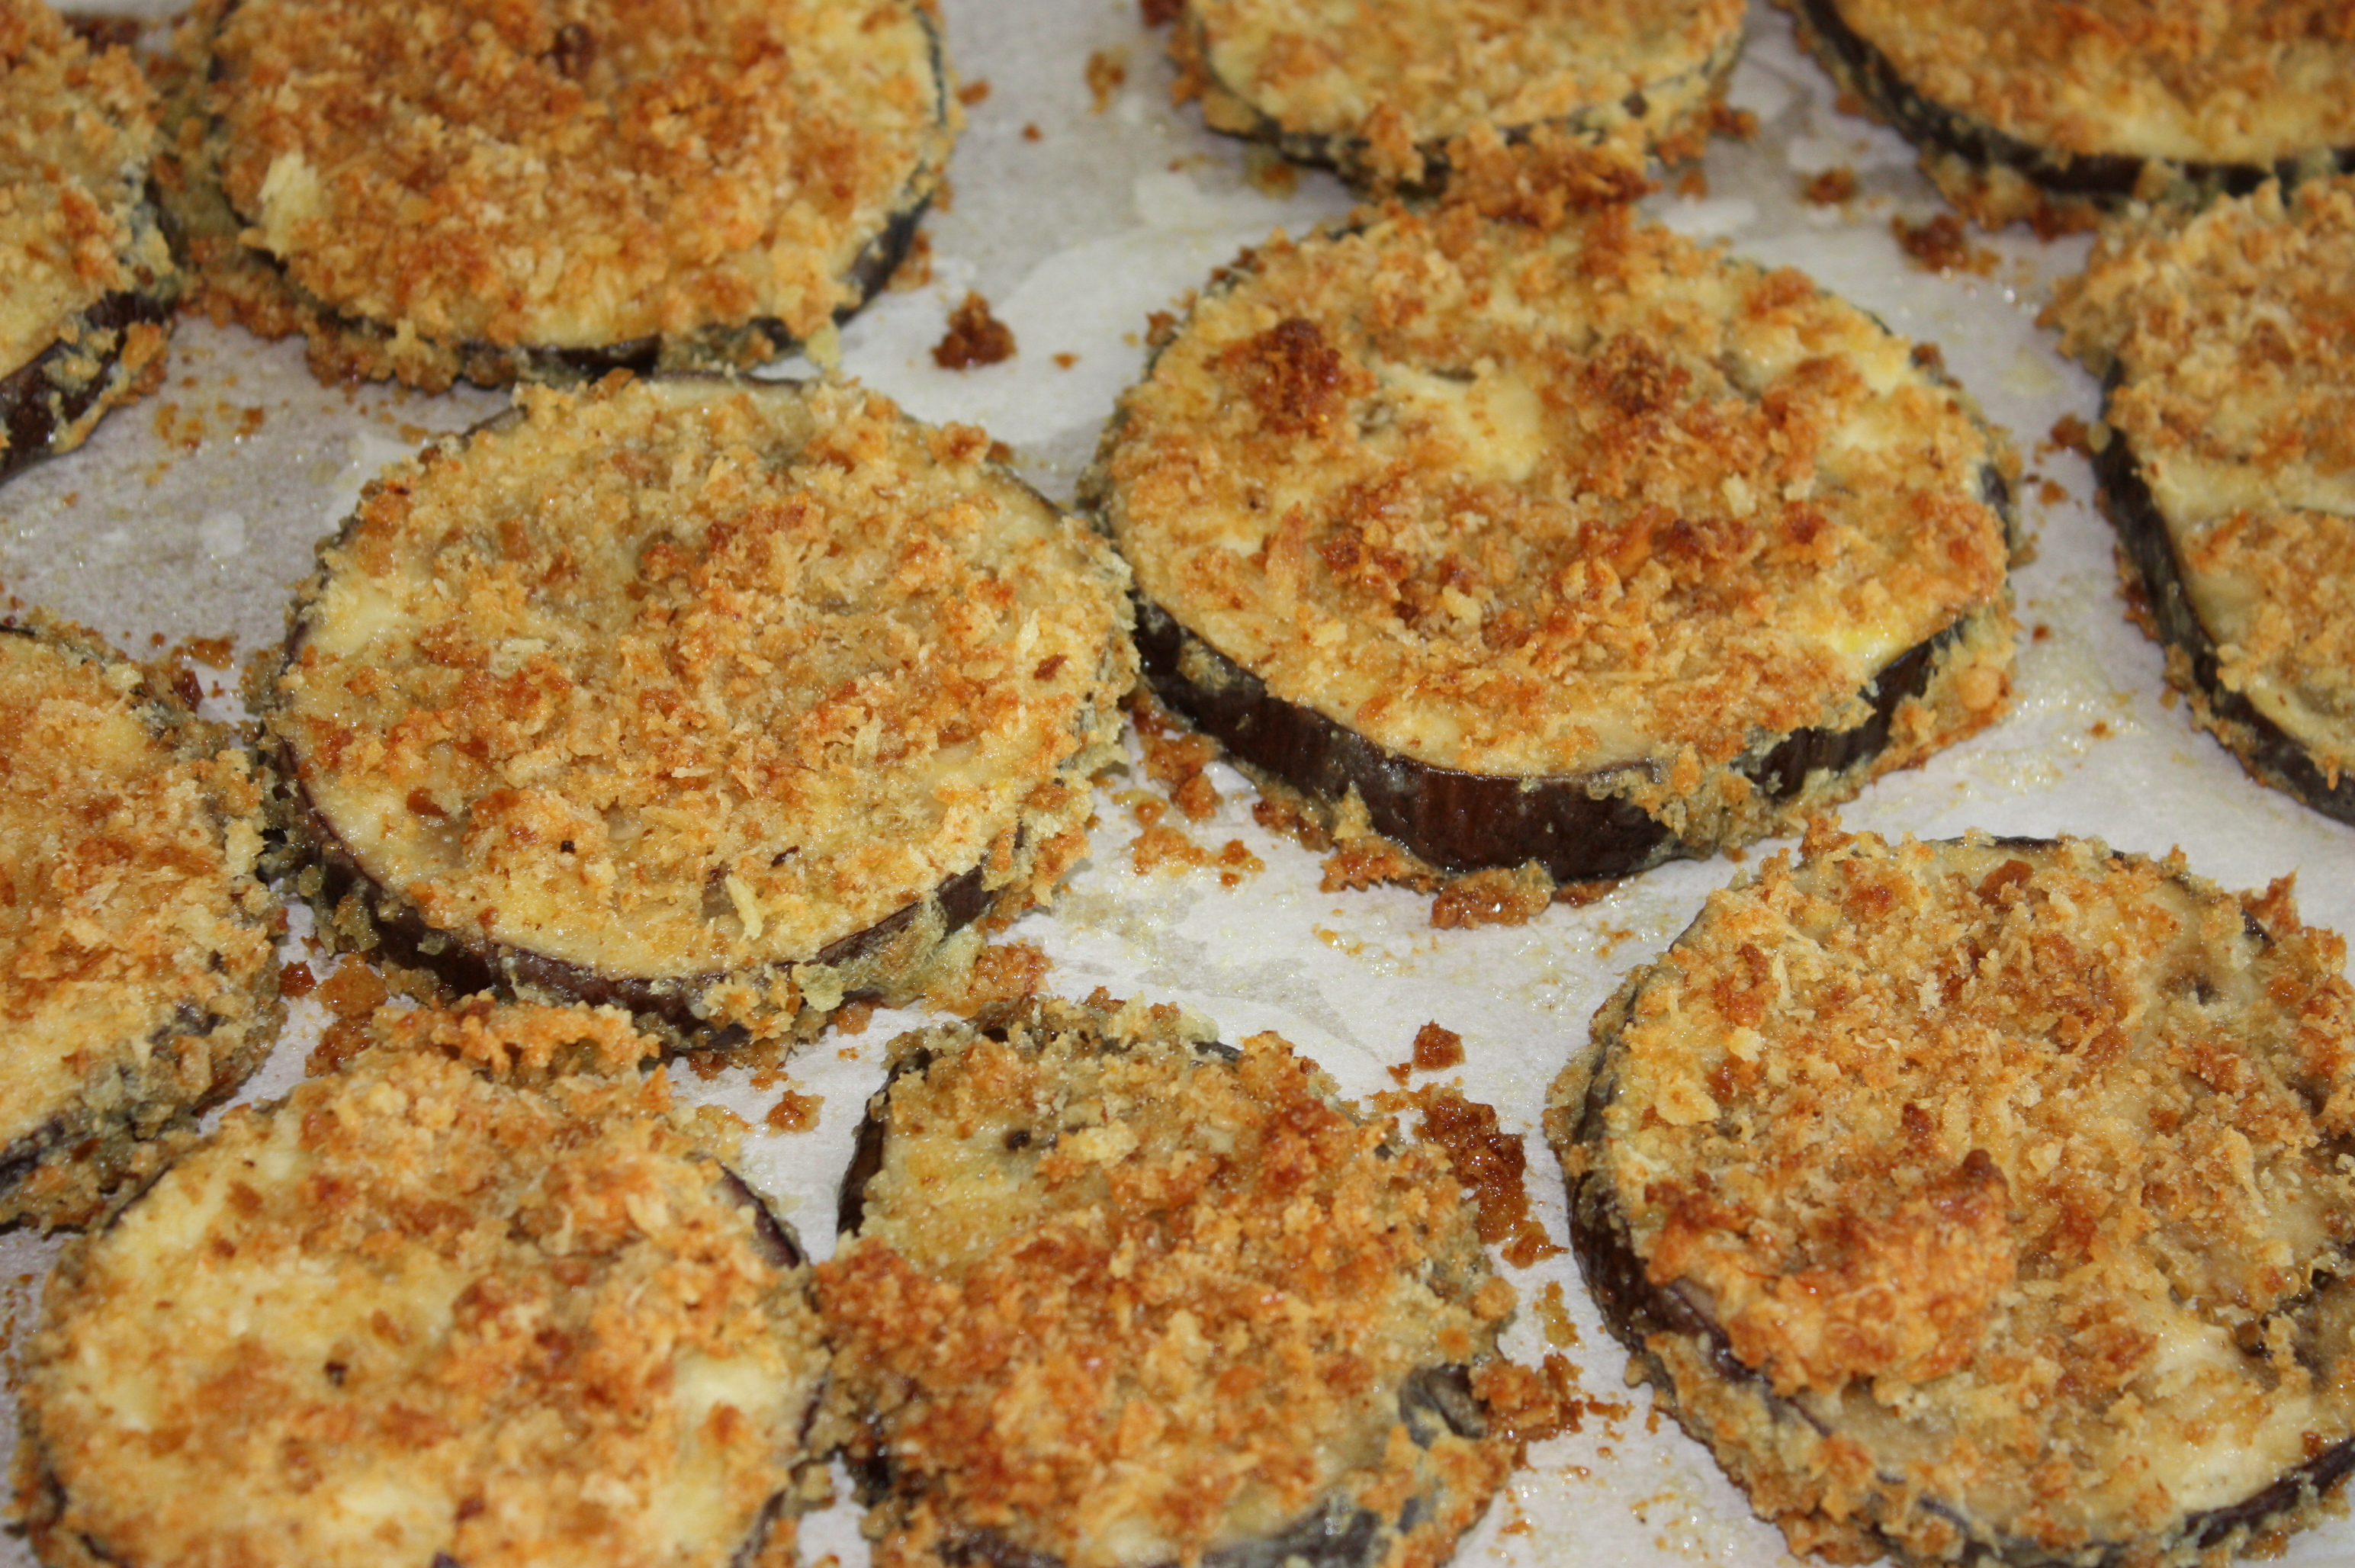 Eggplant Two Ways: Grilled and Parmesan